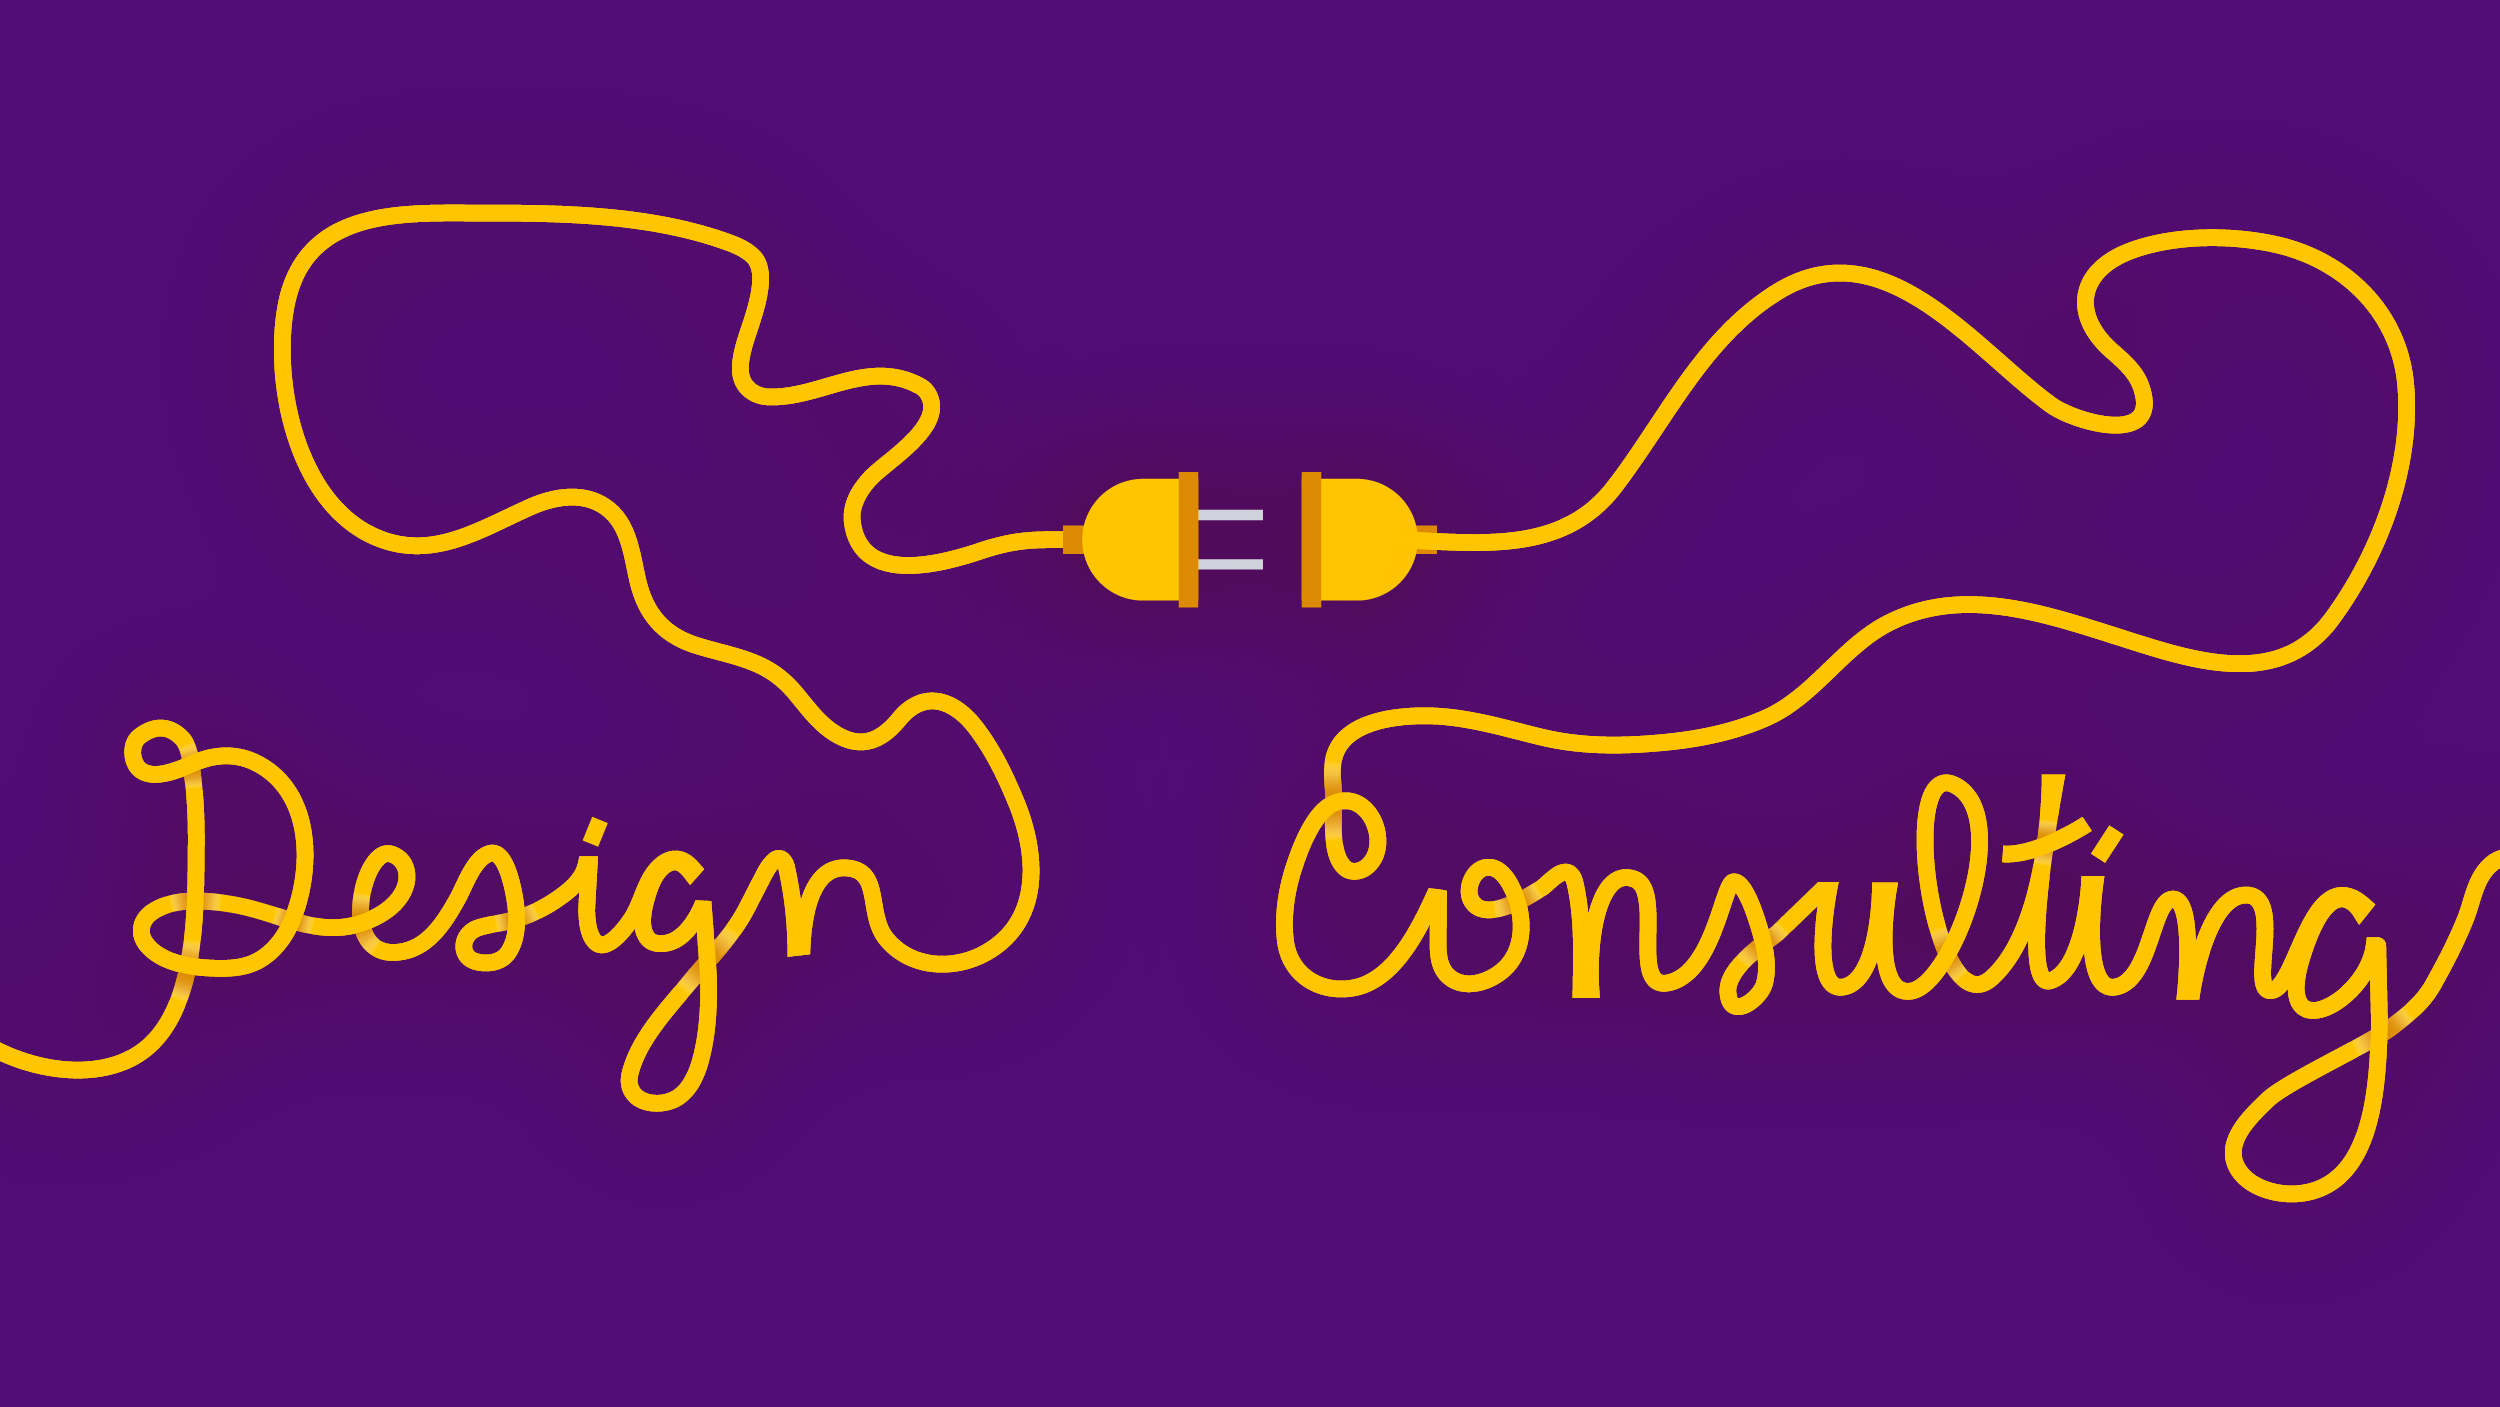 """""""Design"""" and """"Consulting"""" written out with the cords of two yellow plugs meet at the center, about to be plugged in to each other against a dark purple background"""